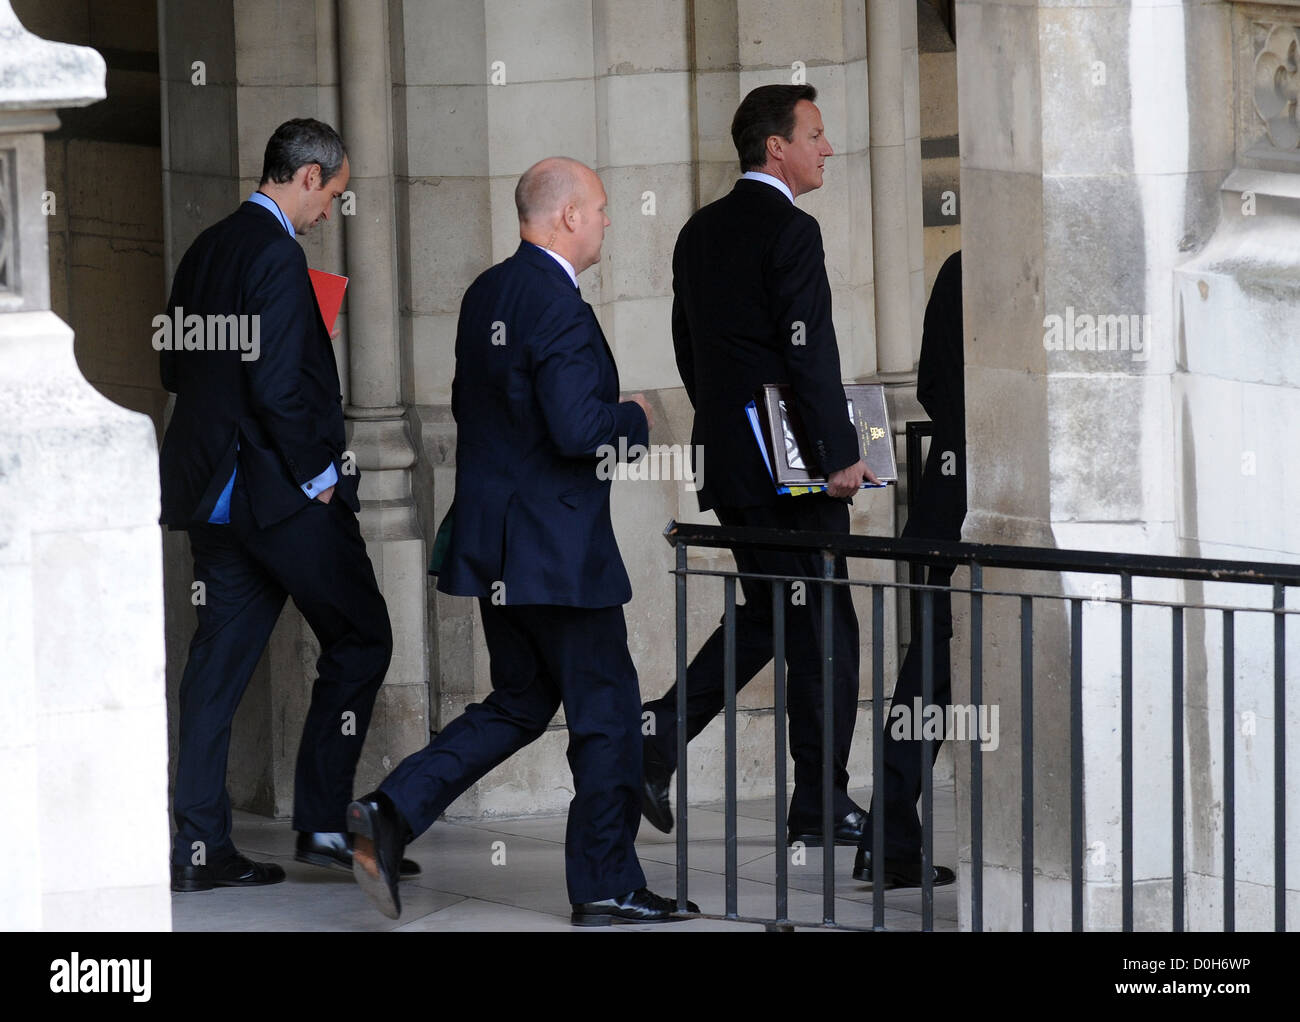 Prime Minister David Cameron arrives at the Houses of Parliament to attend Prime Minister's Questions London, England - Stock Photo